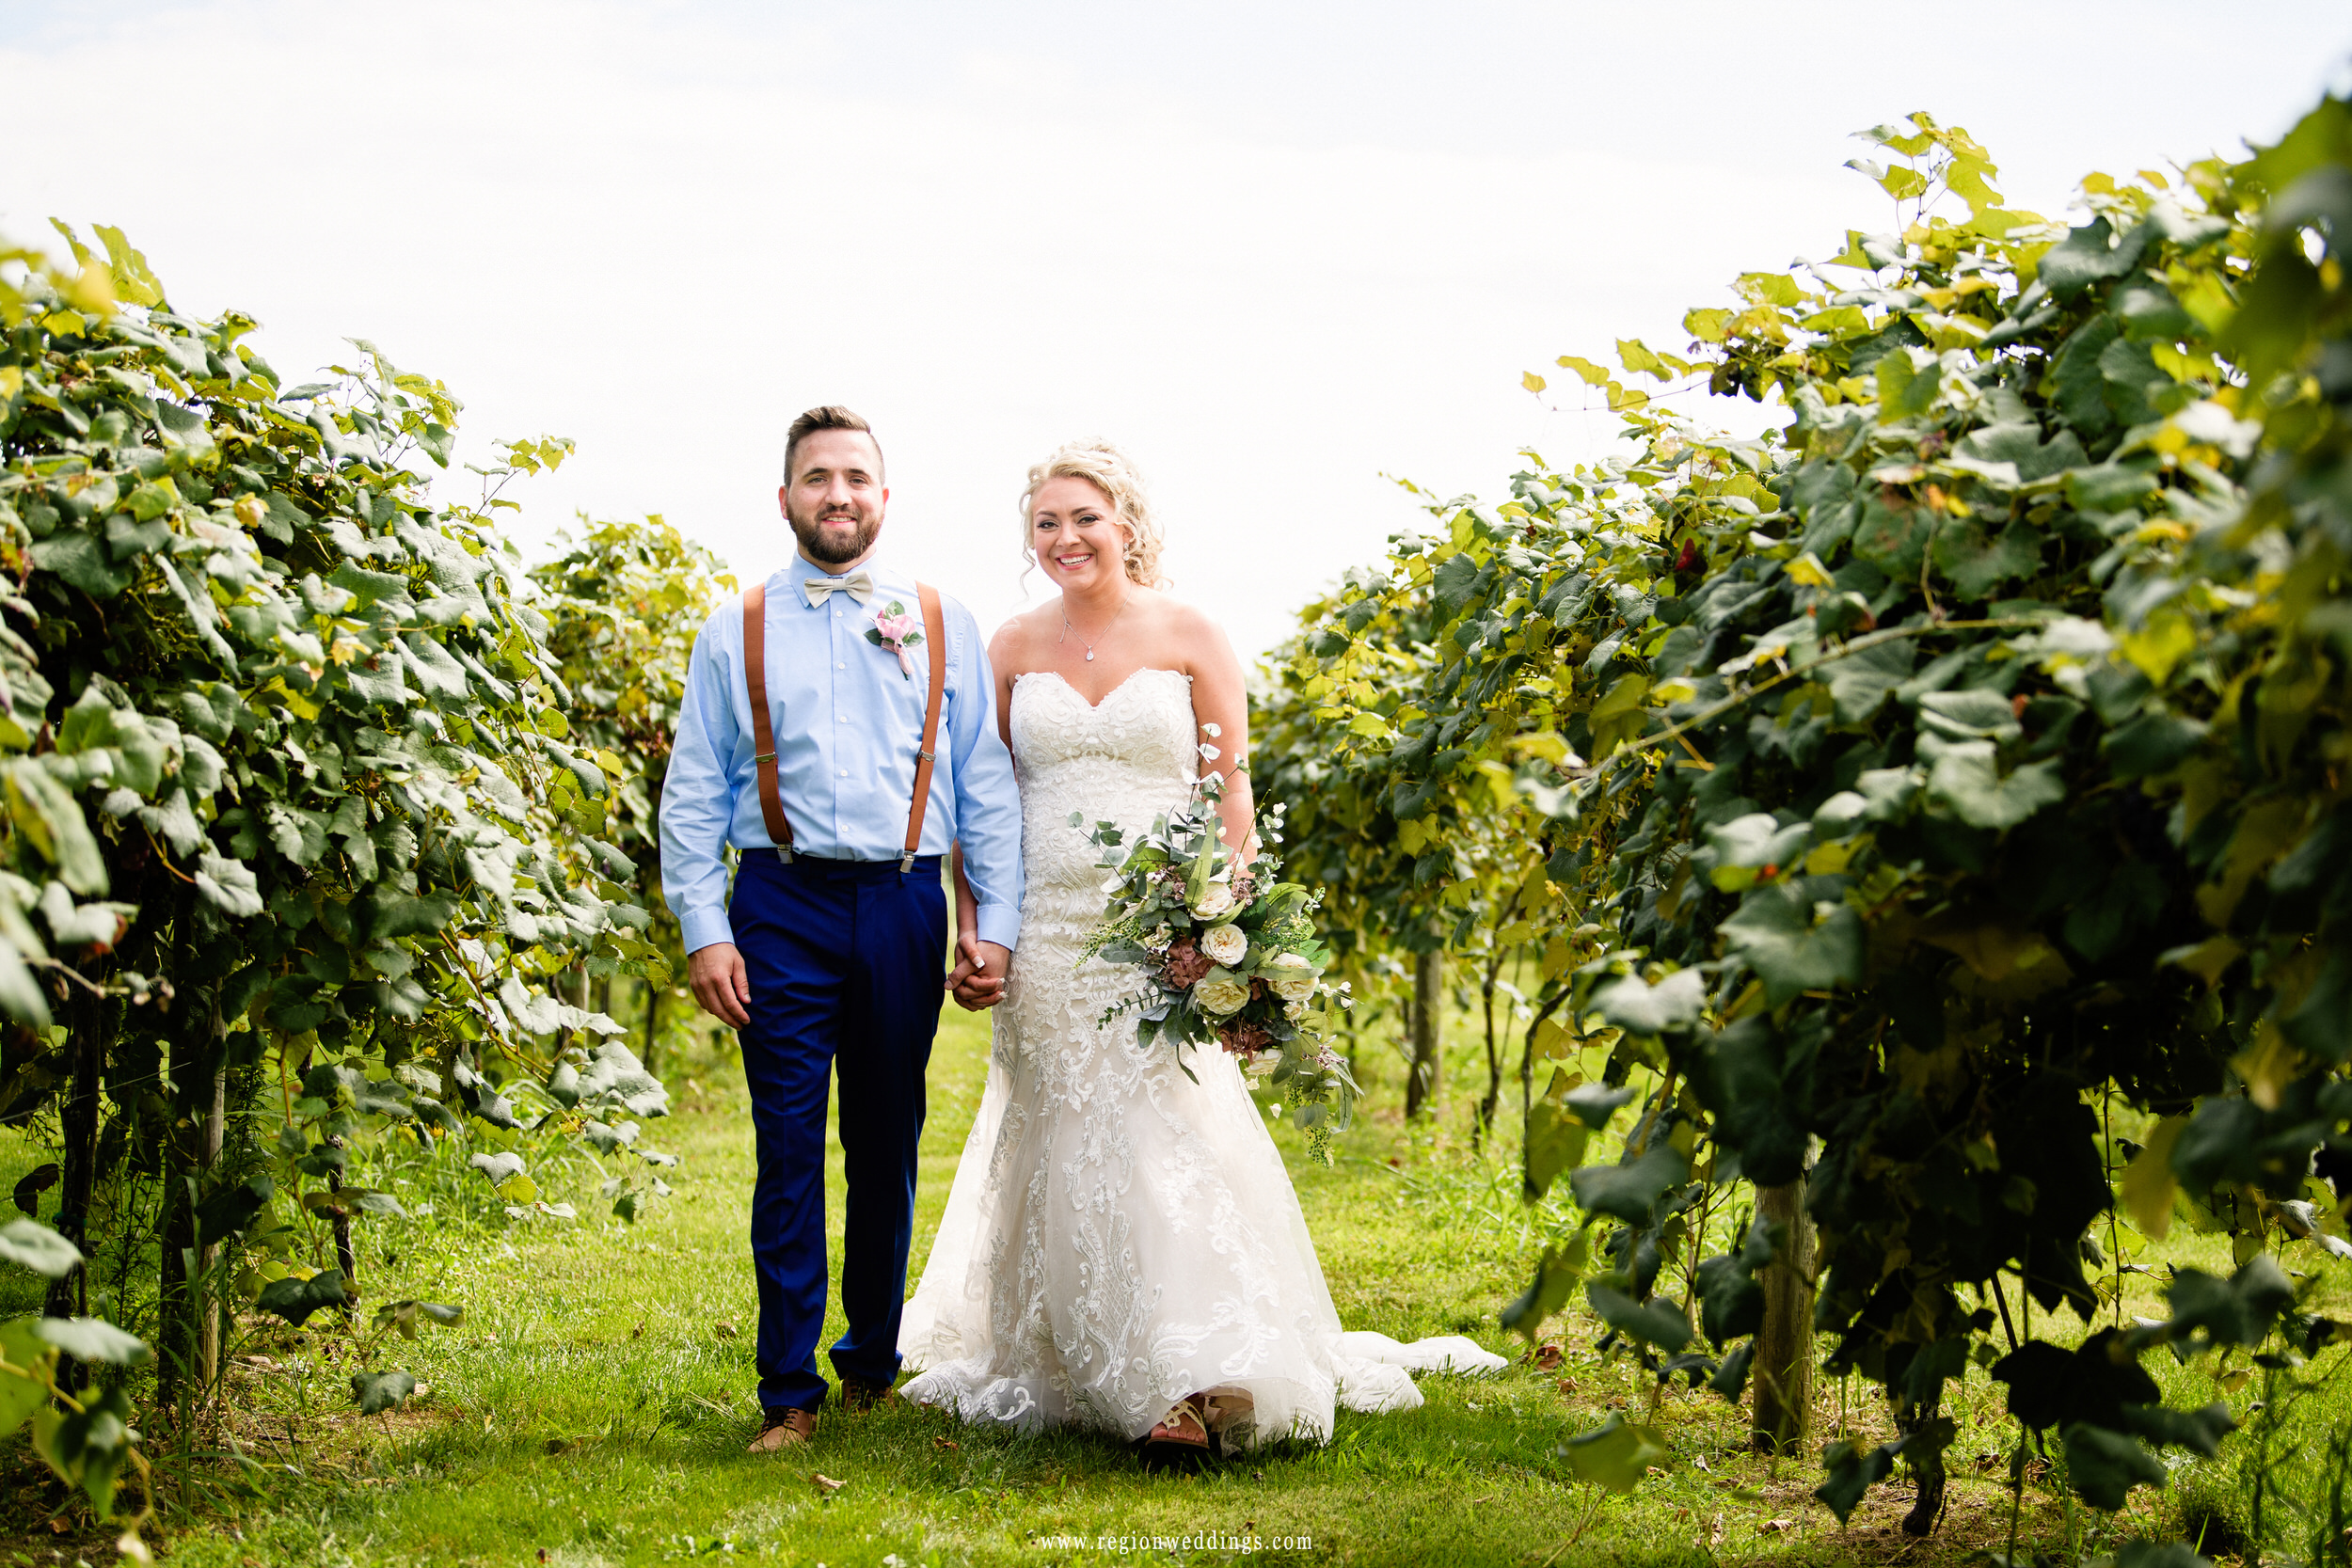 The bride and groom take a stroll through the grape orchards.